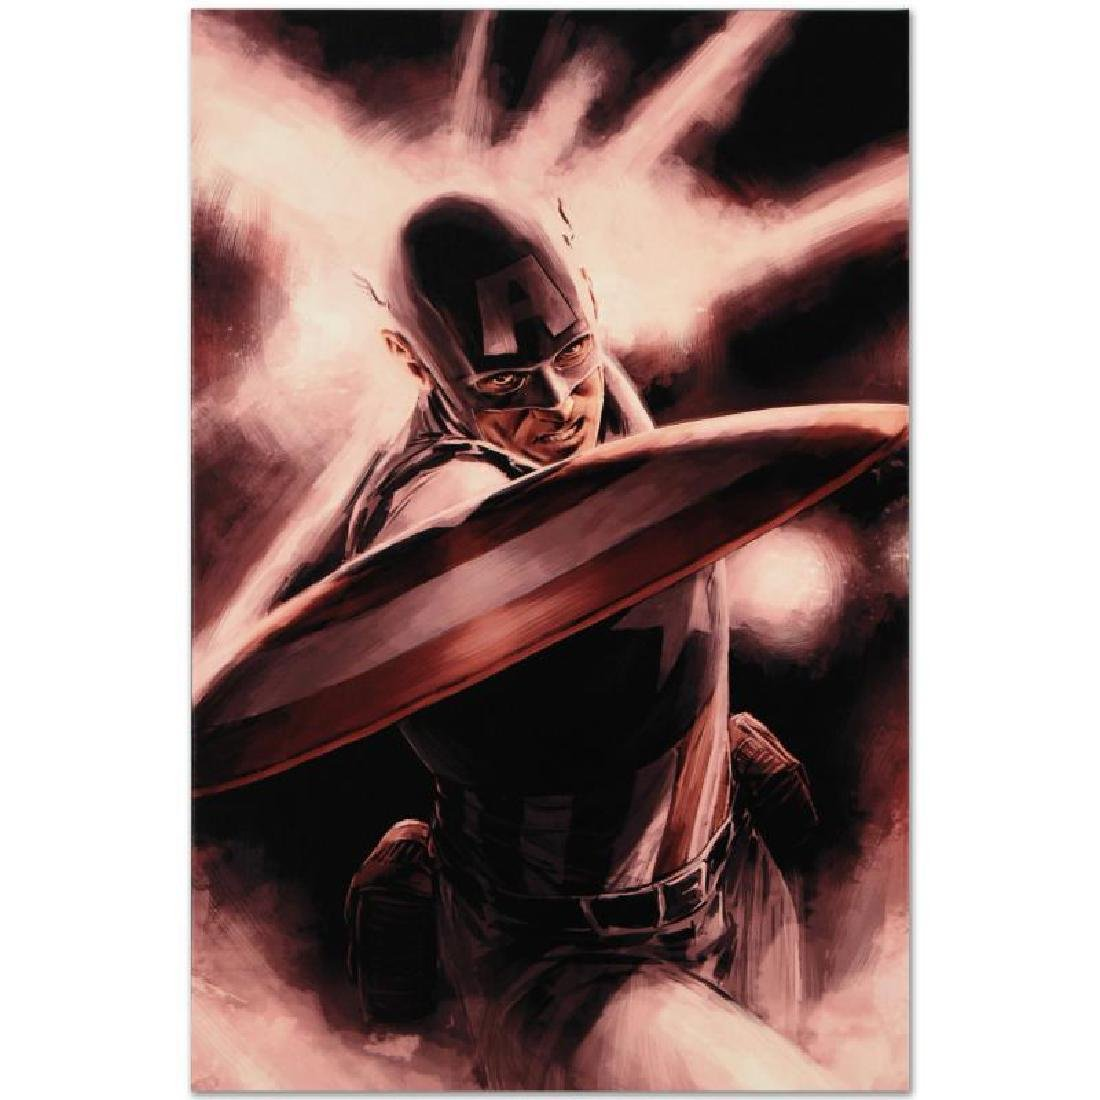 Captain America Theater of War: A Brother in Arms #1 by